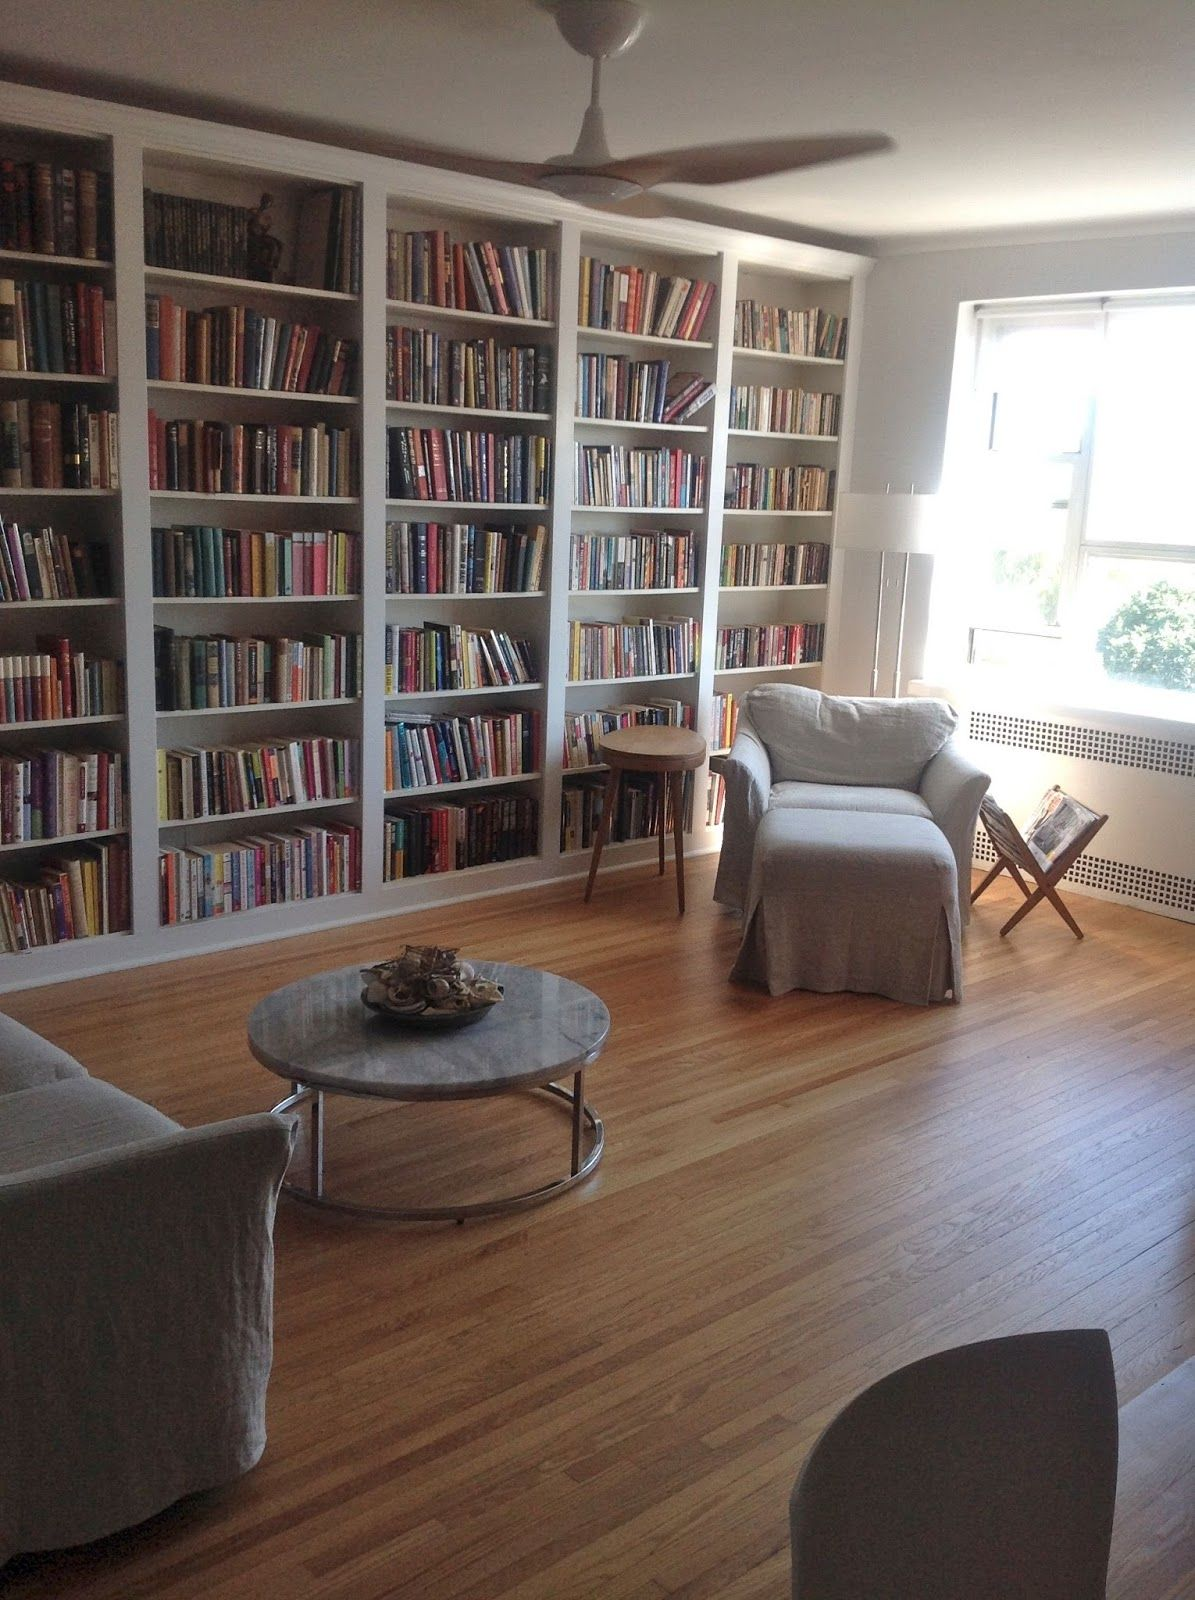 Ikea Home Office Library Ideas: Ikea Hack: Built-In Bookcases